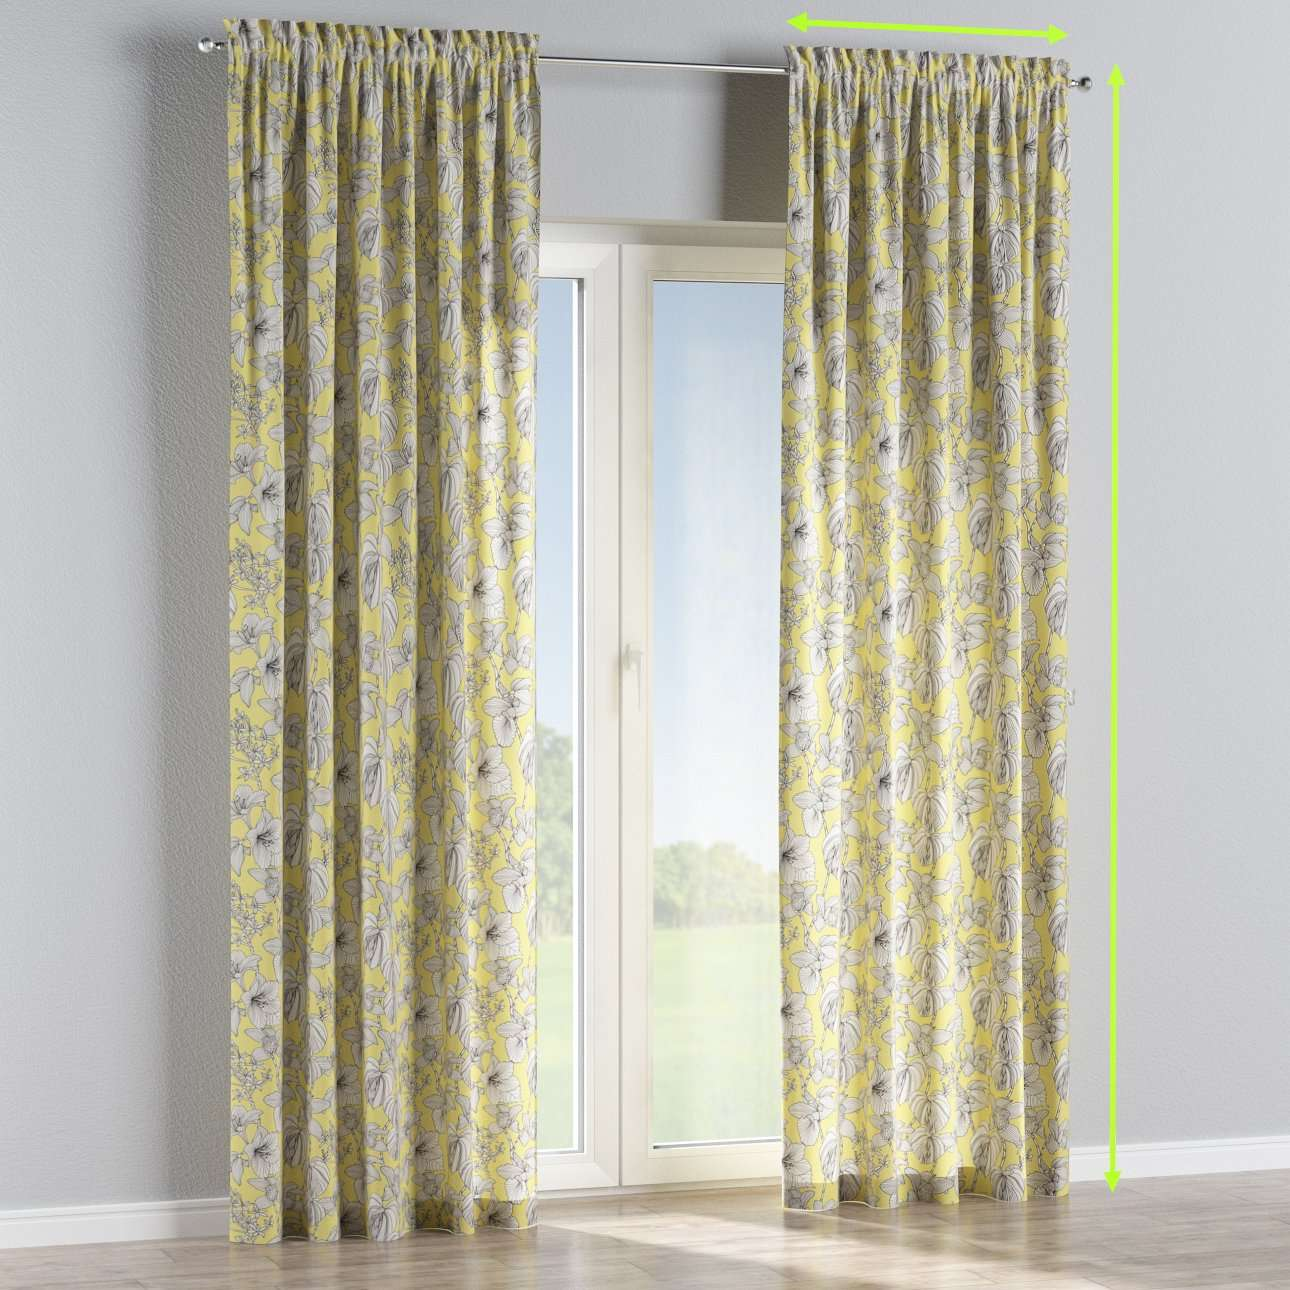 Slot and frill lined curtains in collection Brooklyn, fabric: 137-78